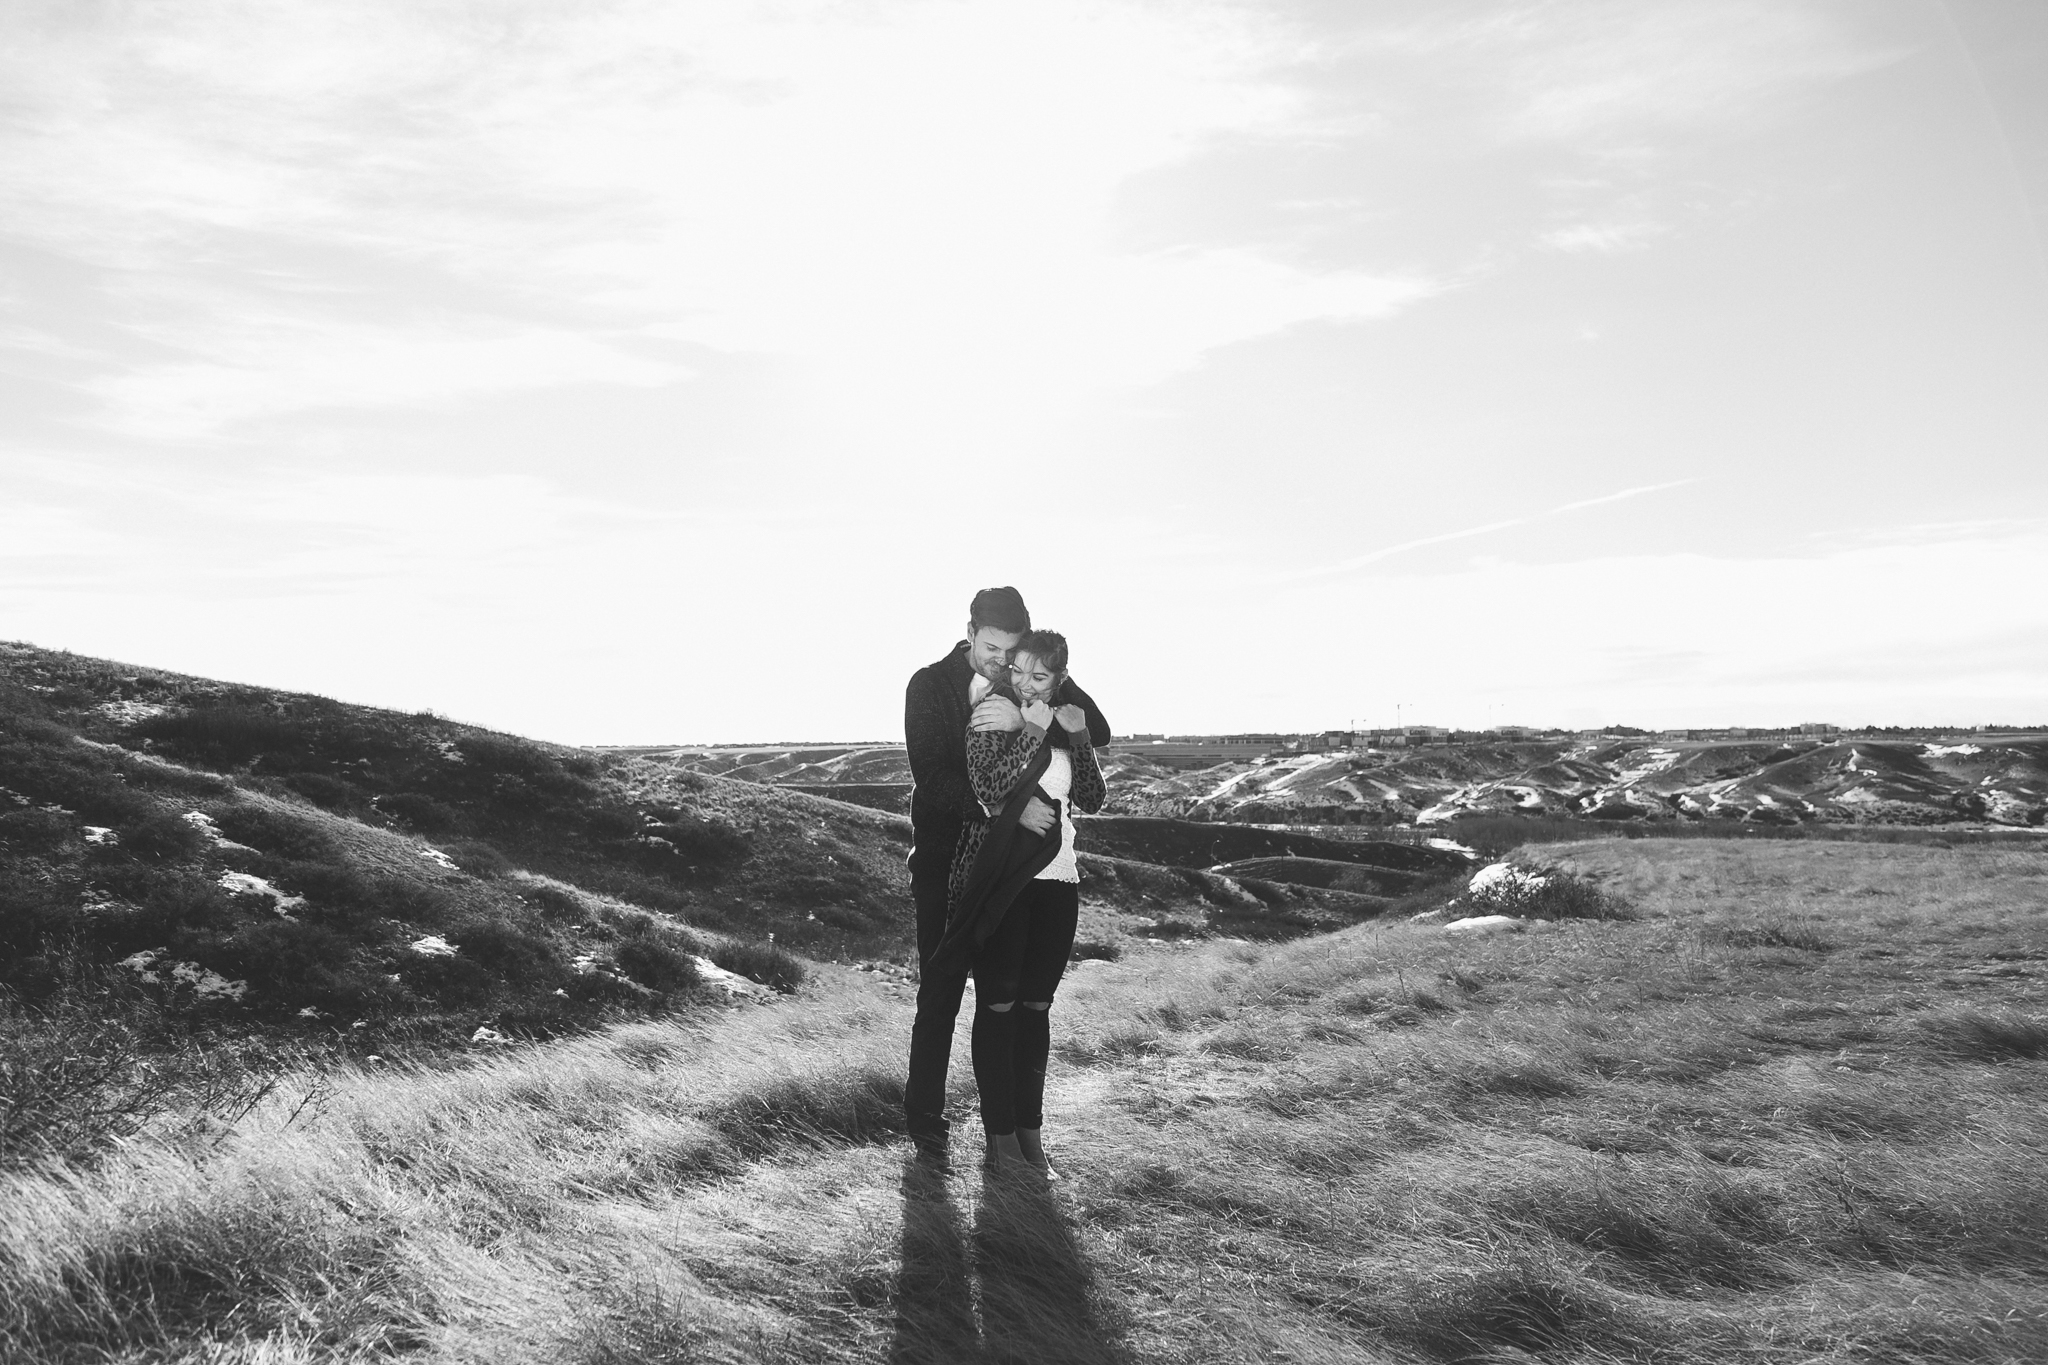 lethbridge-photographer-love-and-be-loved-photography-winter-engagement-emma-tanner-picture-image-photo-13.jpg